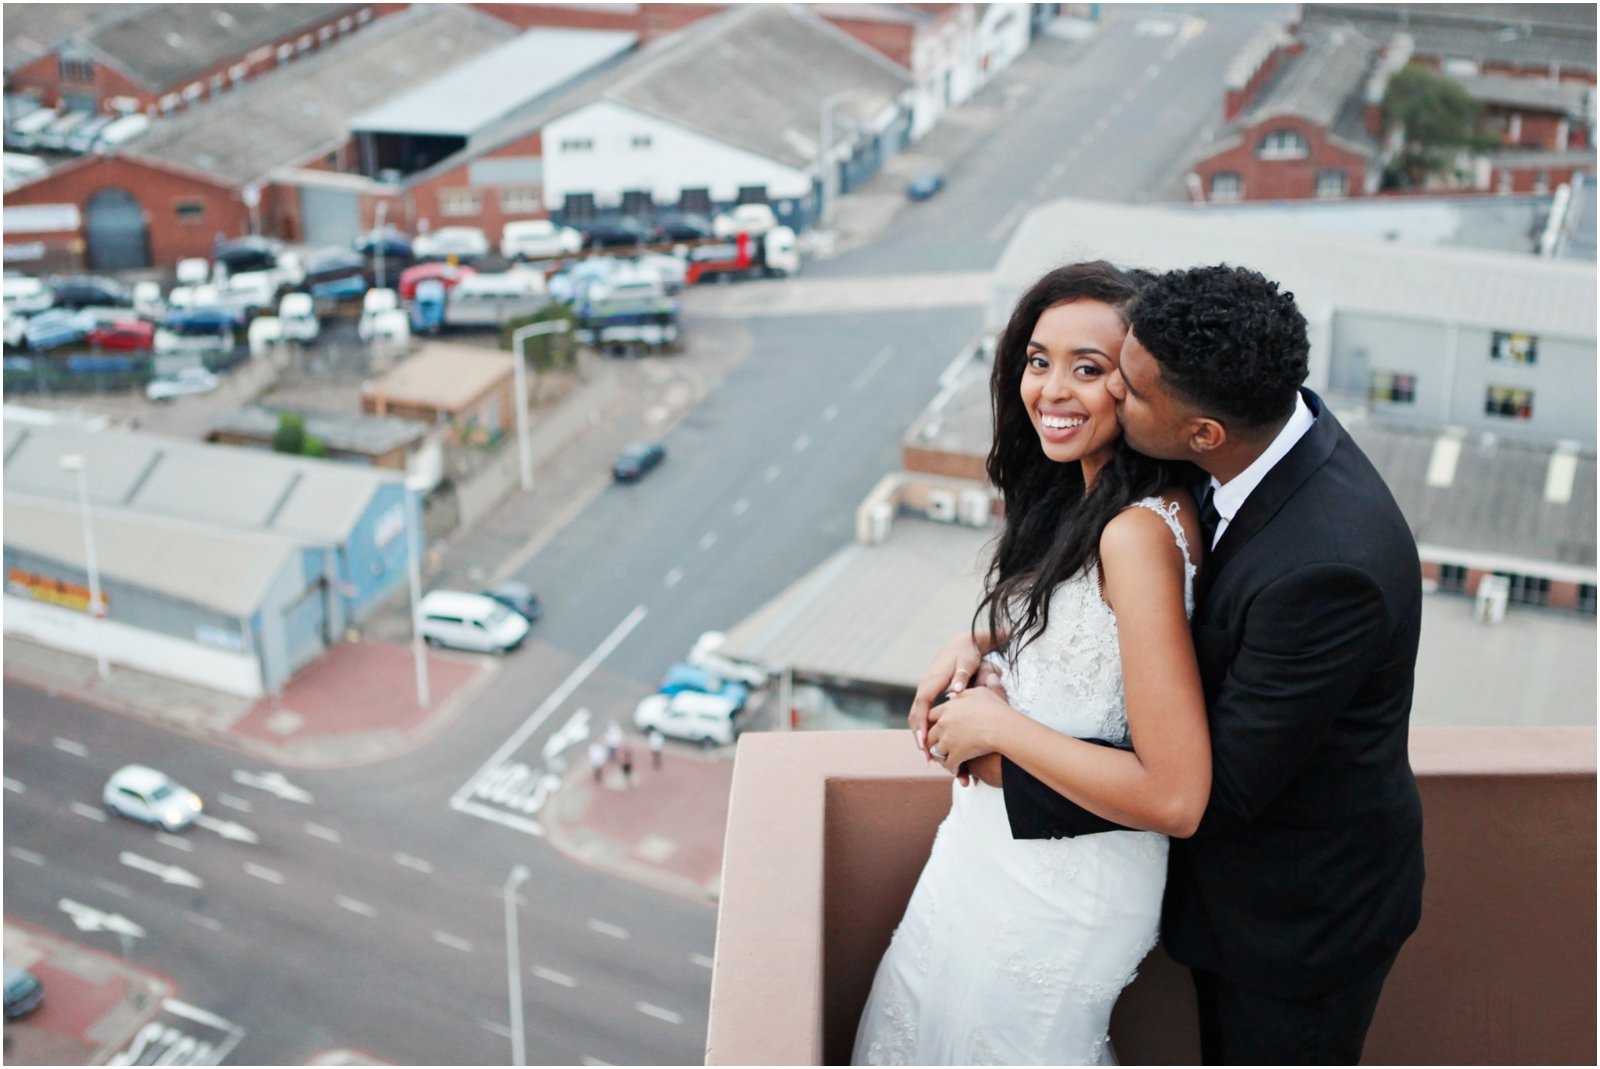 hoorayweddings_highfashionurbanwedding_037